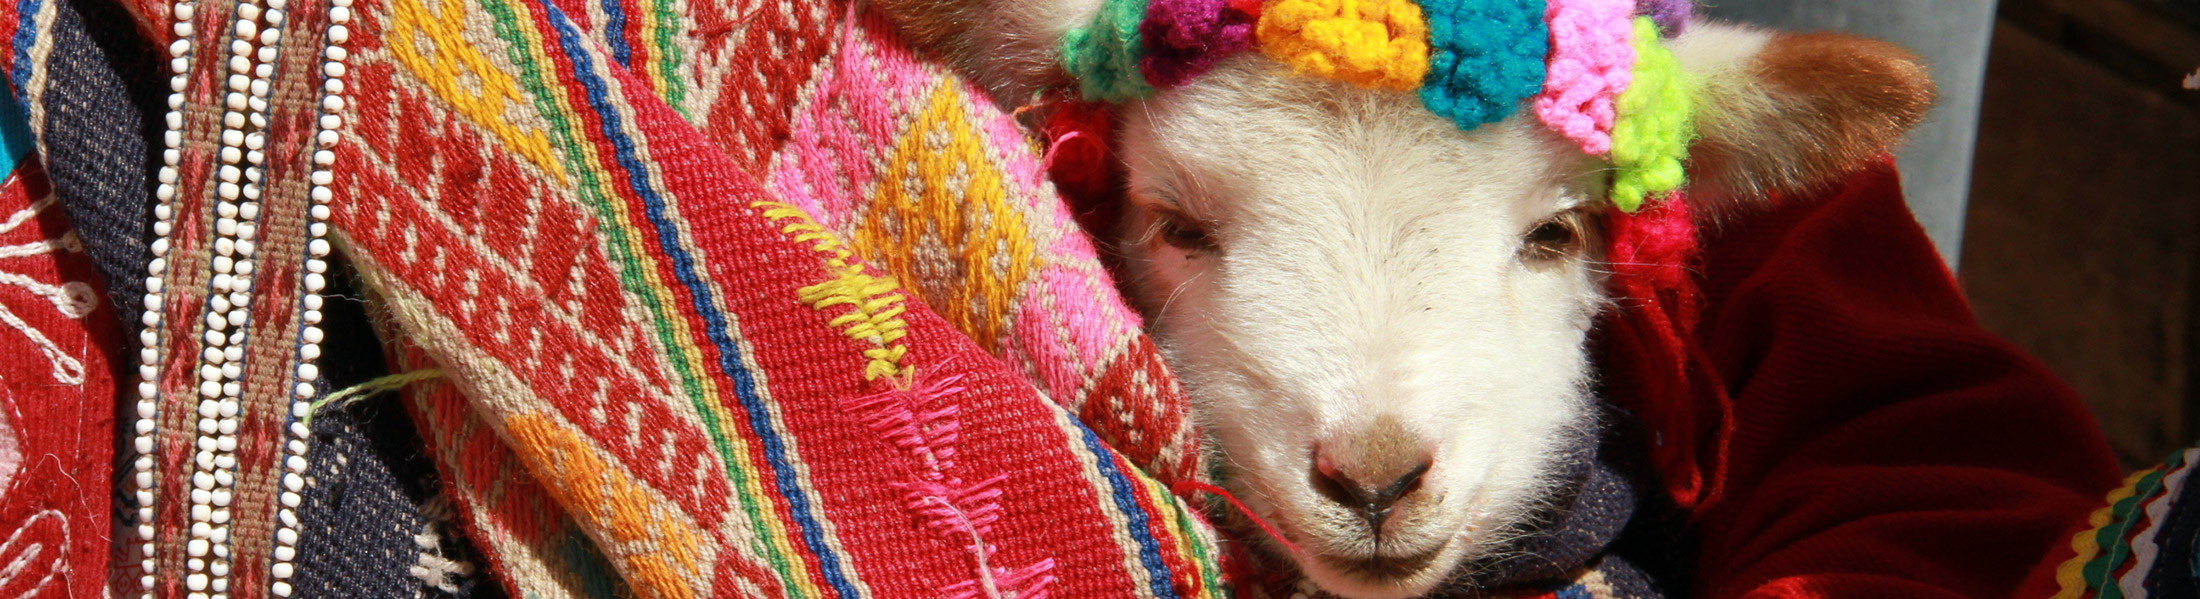 Lamb in Incan Clothing in South America